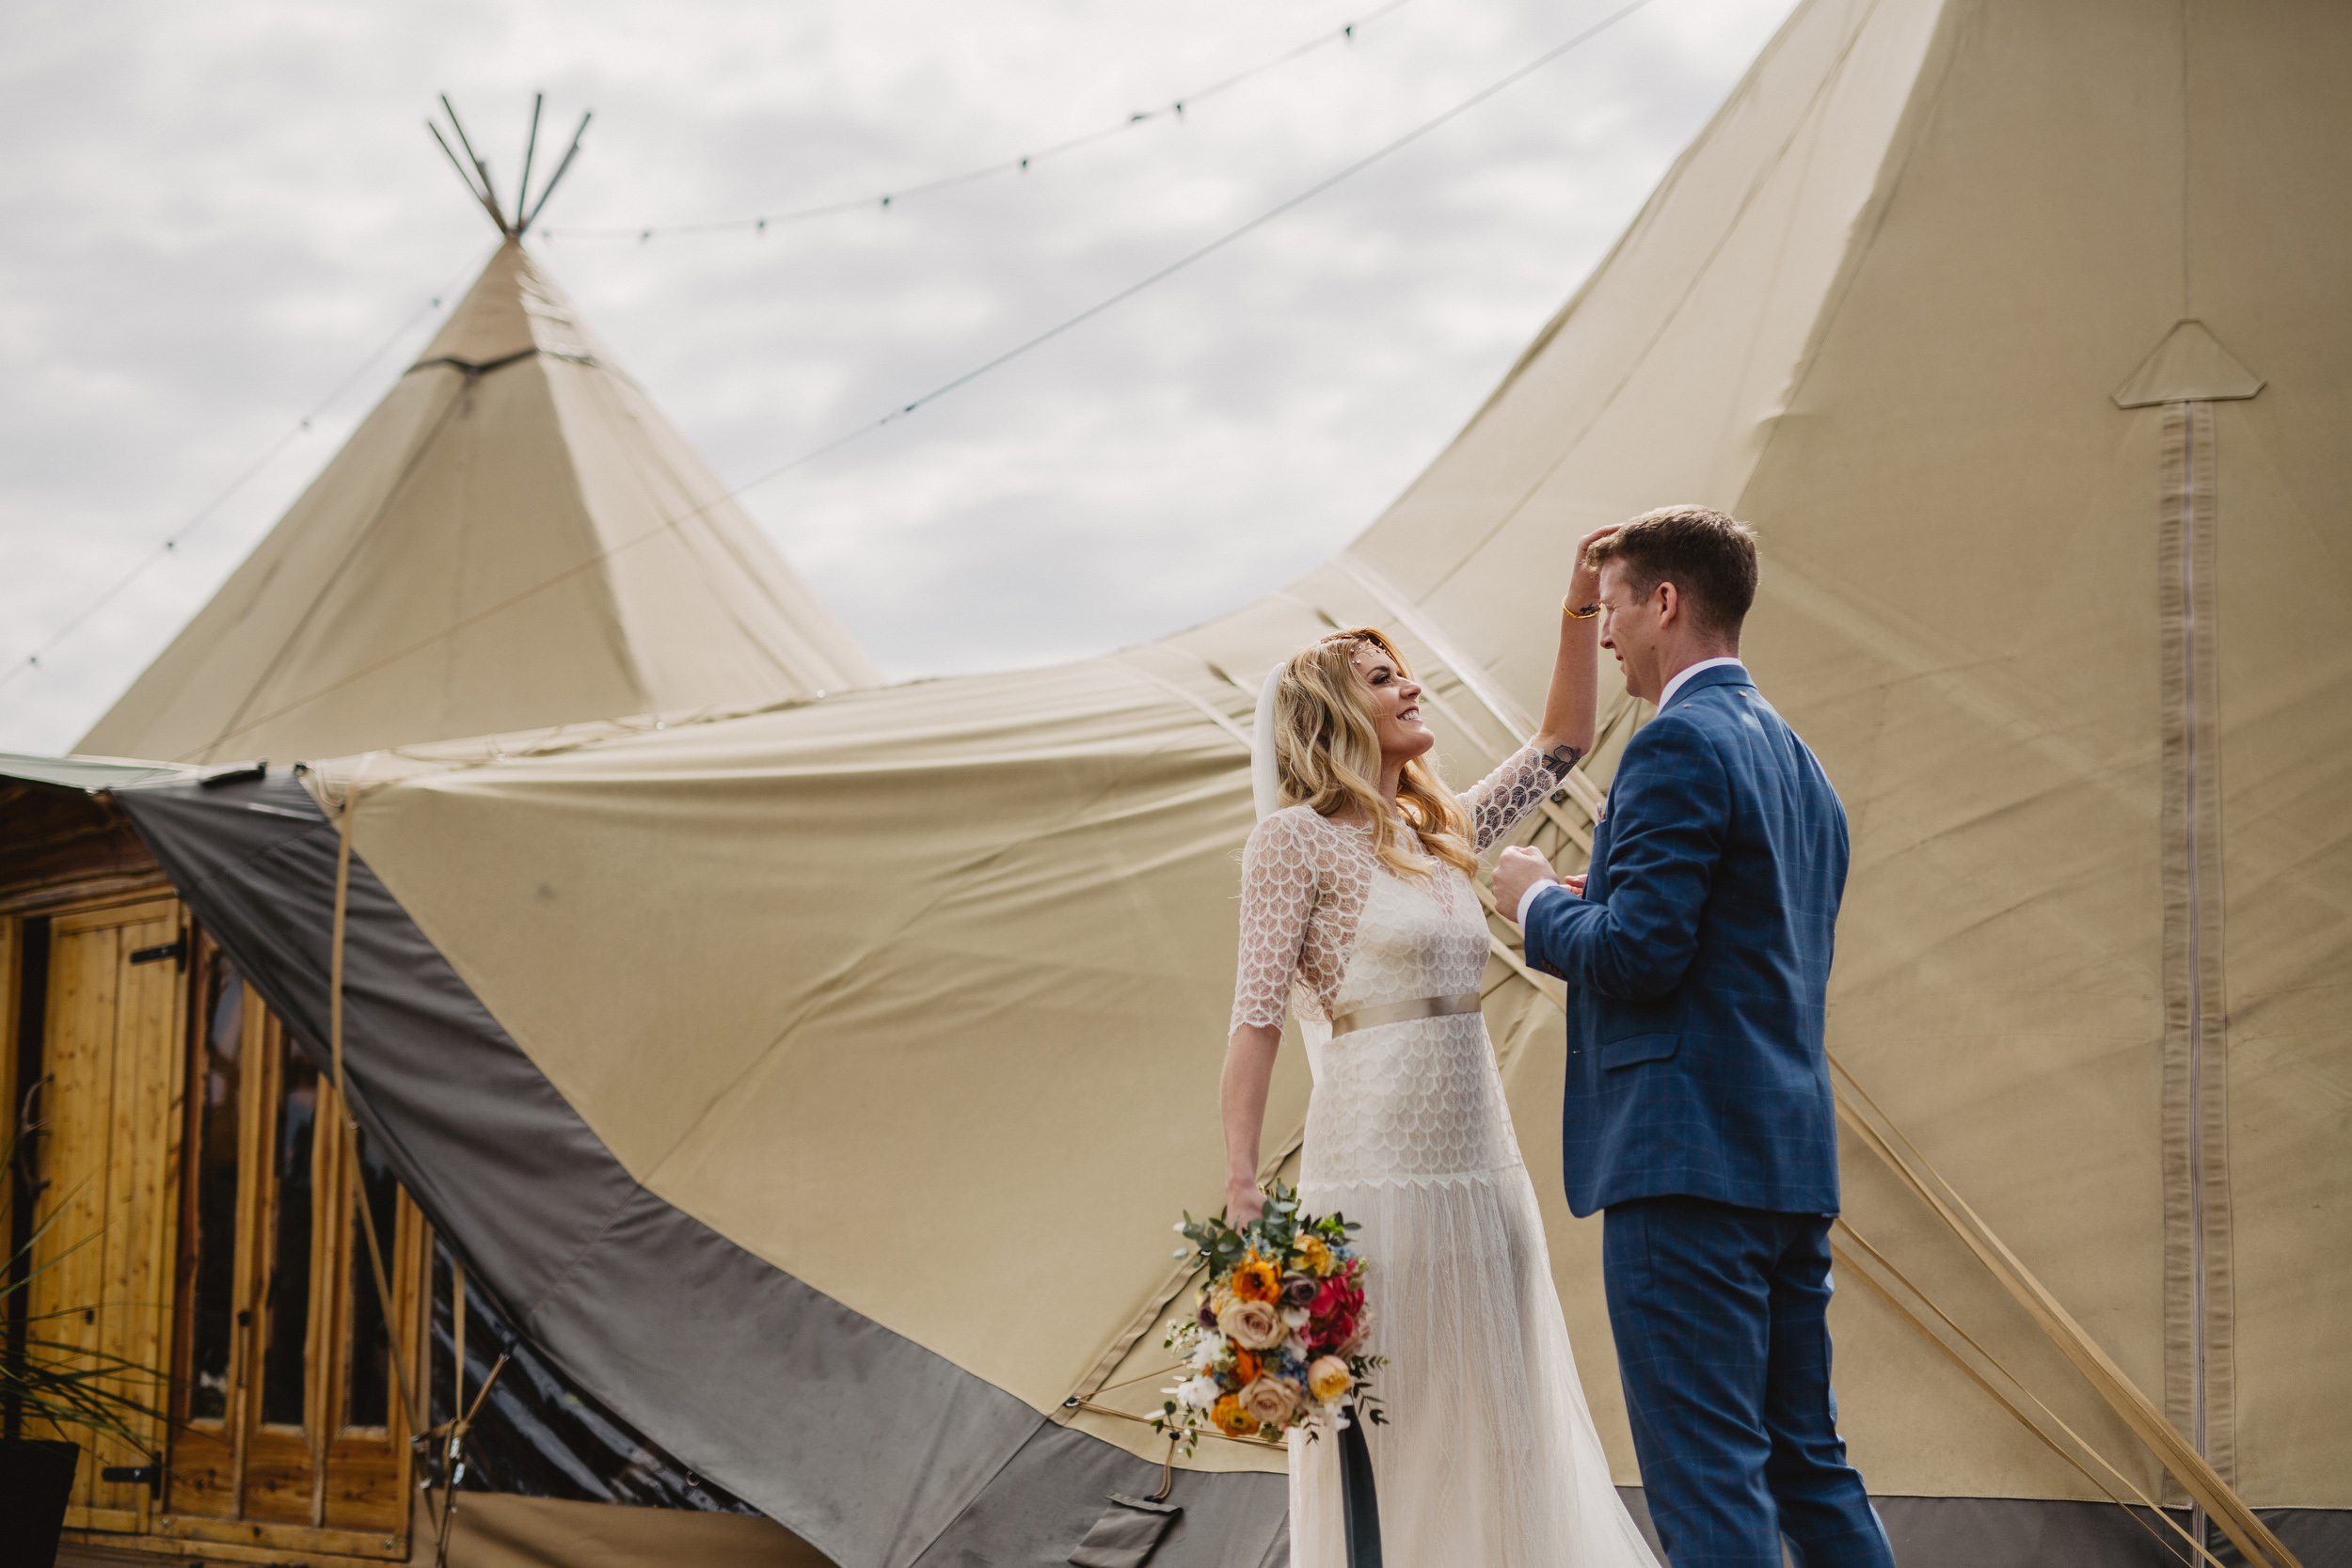 Gemma-Bohemian-Outdoor-Tipi-Wedding-Laid-Back-Relaxed-Family-Wedding-Kate-Beaumont-Astilbe-by-S6-Photography-Sheffield-23.jpg